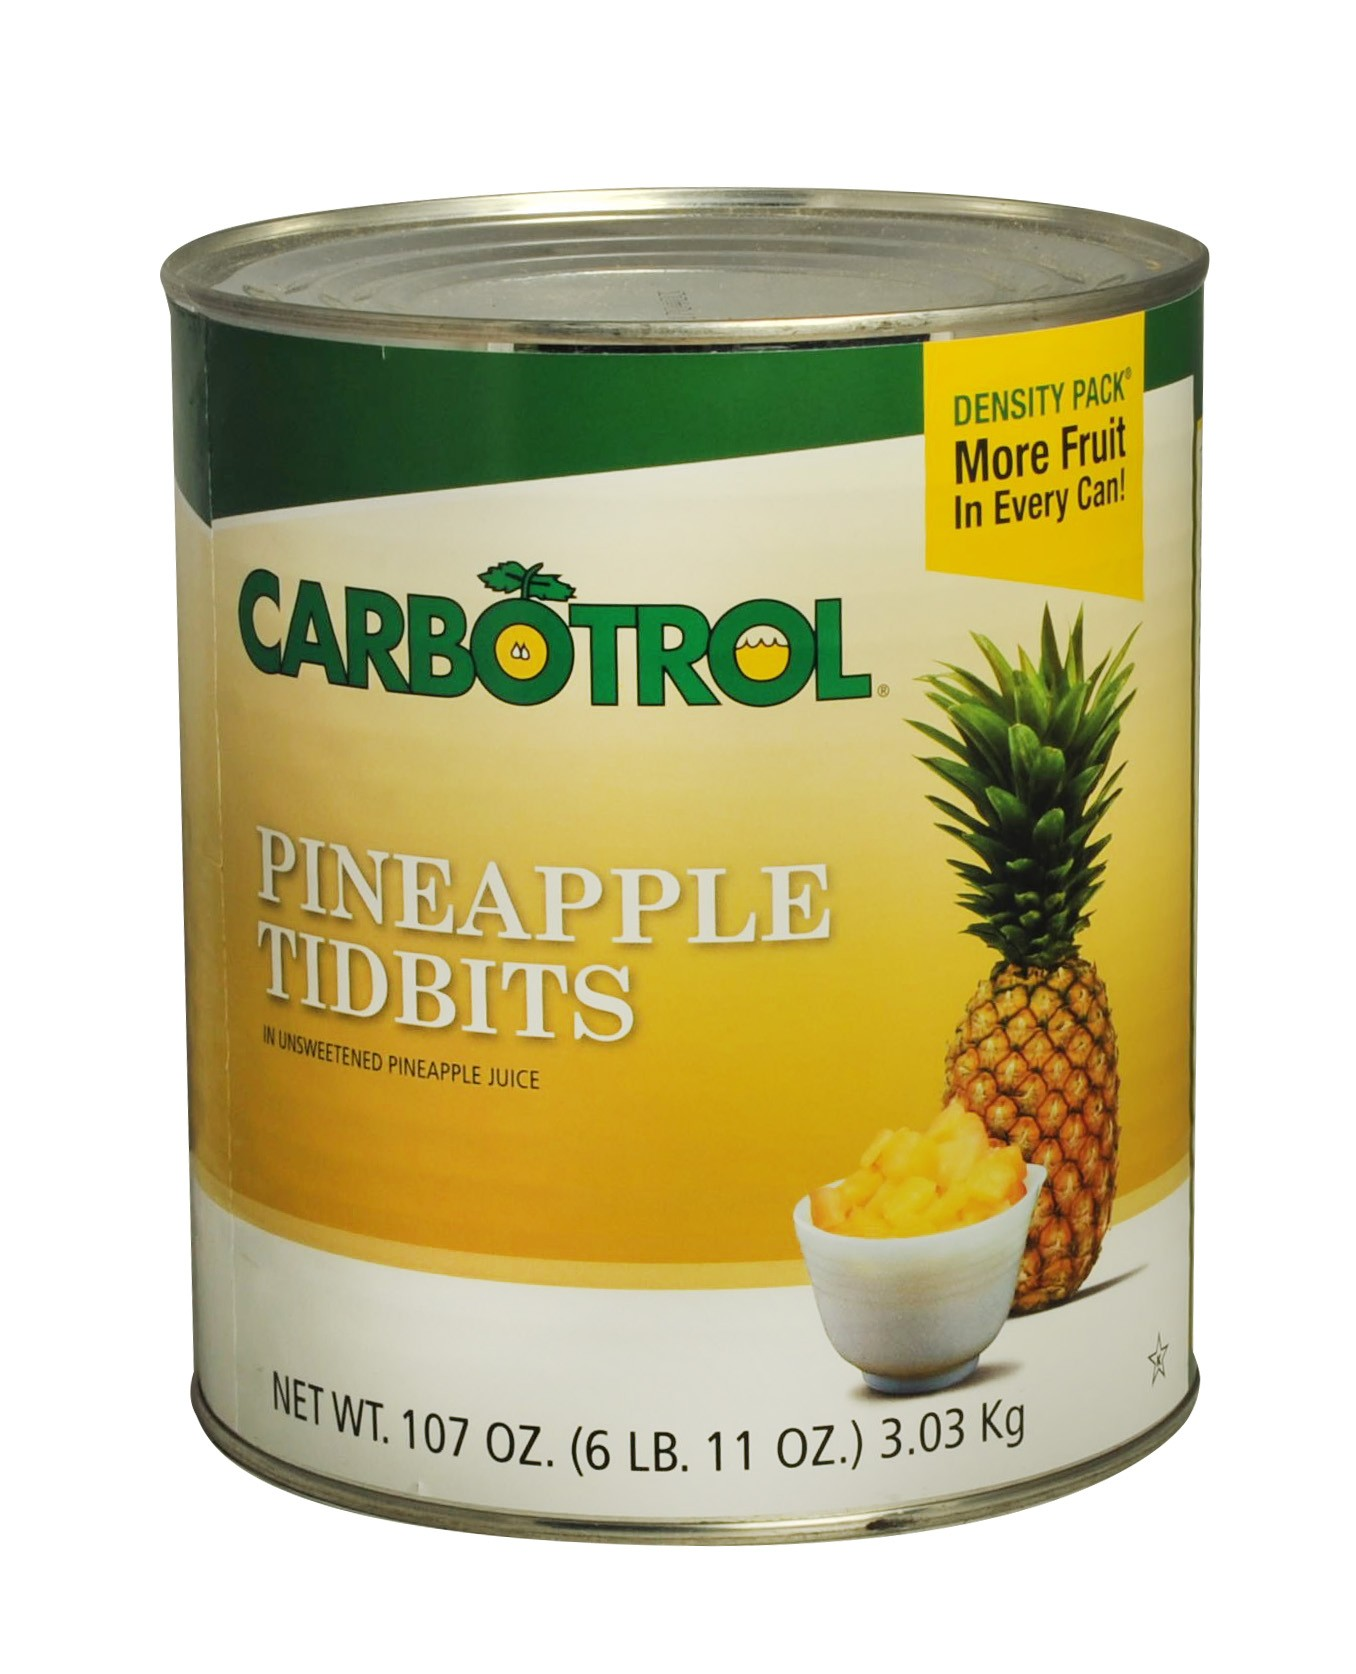 Carbotrol #10 Juice Packed Canned Fruit, Pineapple Tidbits (1 - 107oz Can)